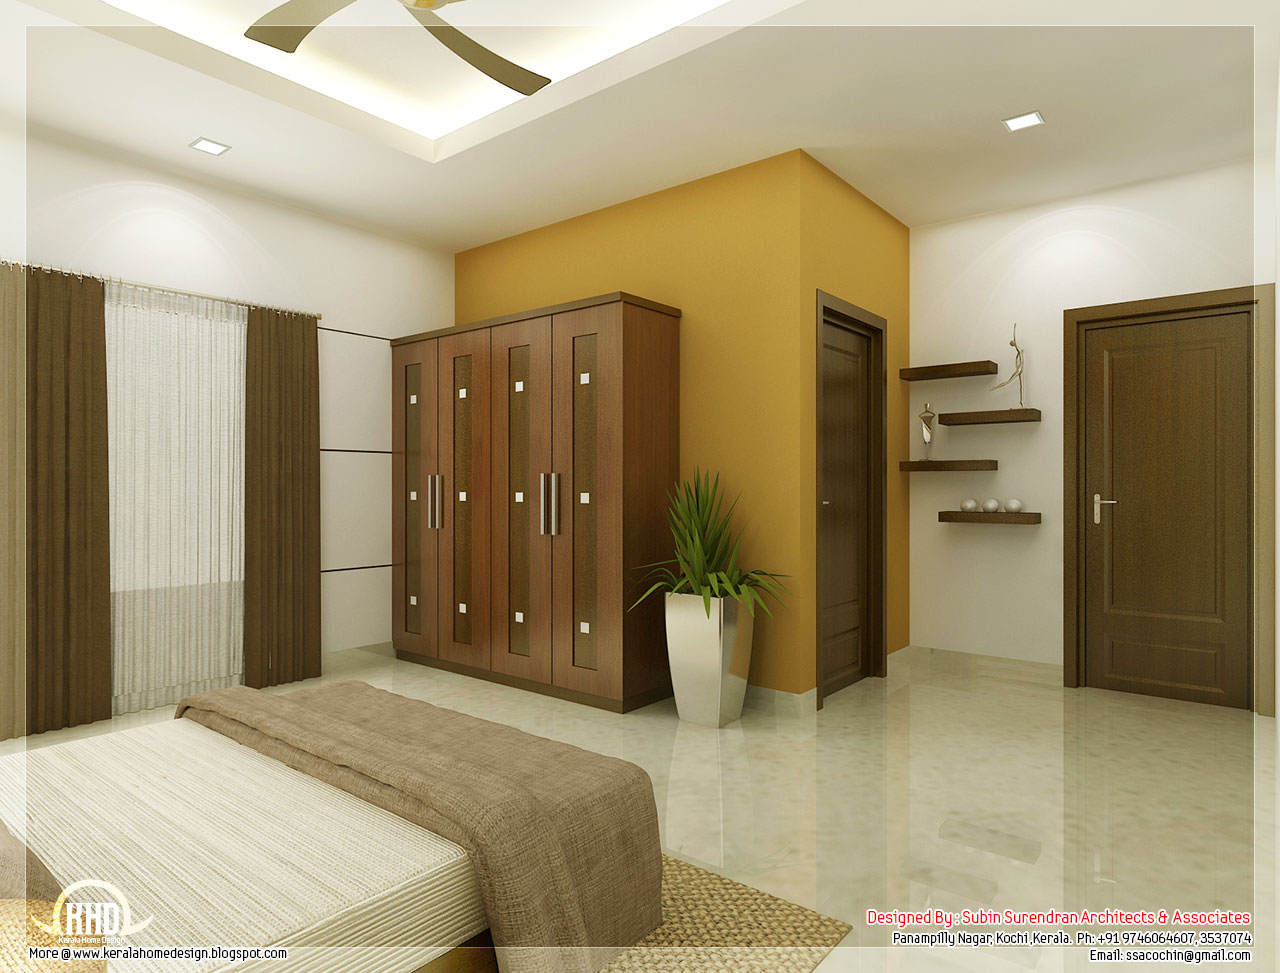 Beautiful bedroom interior designs kerala home design for Interior design ideas